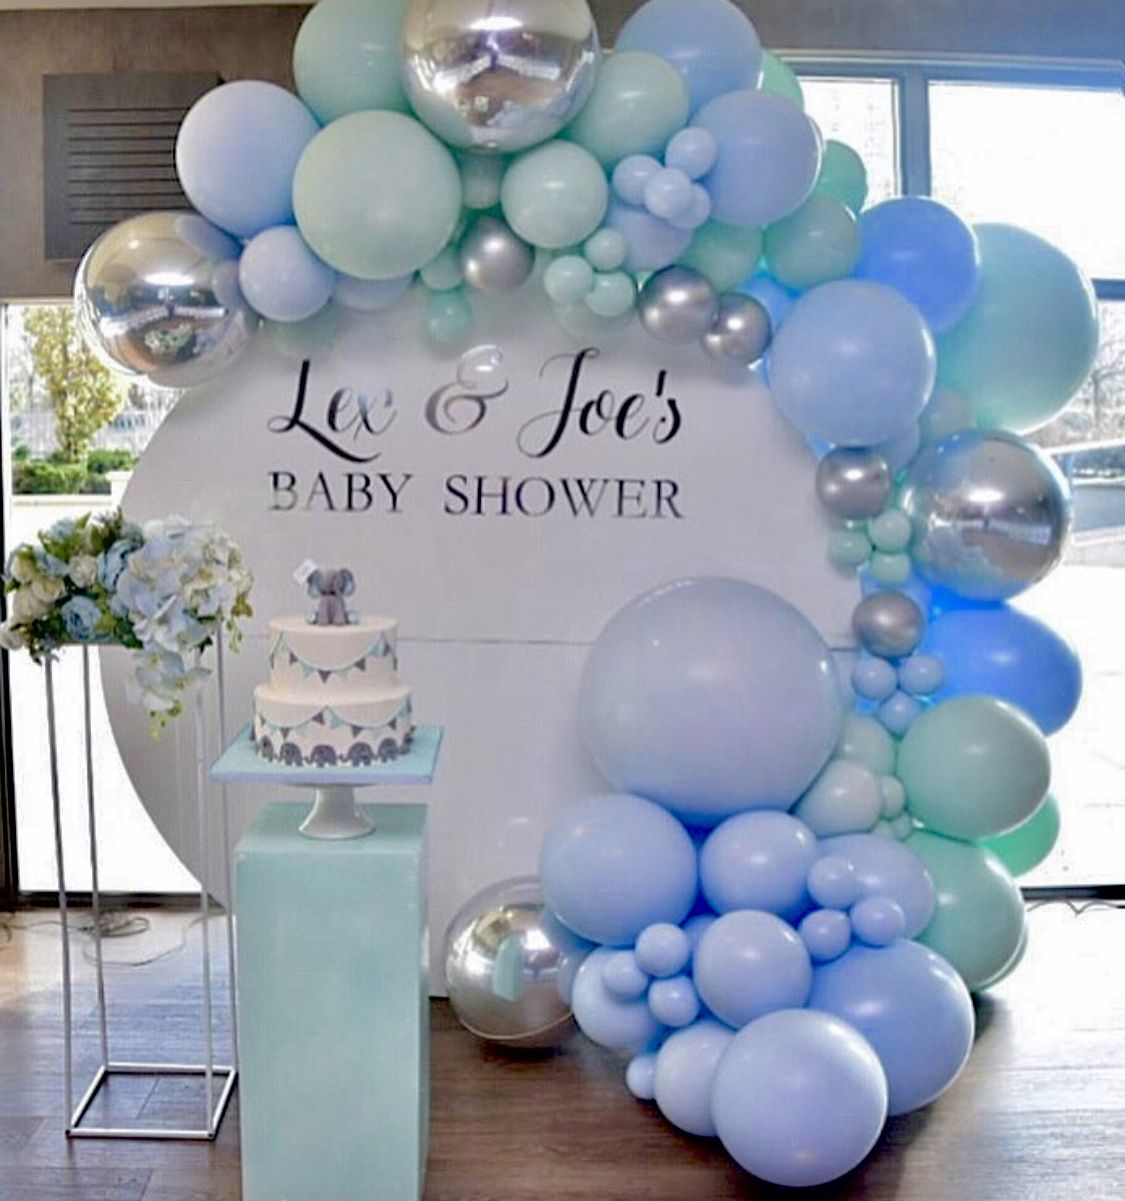 Blog Baby Shower Balloons Baby Shower Decorations Shower